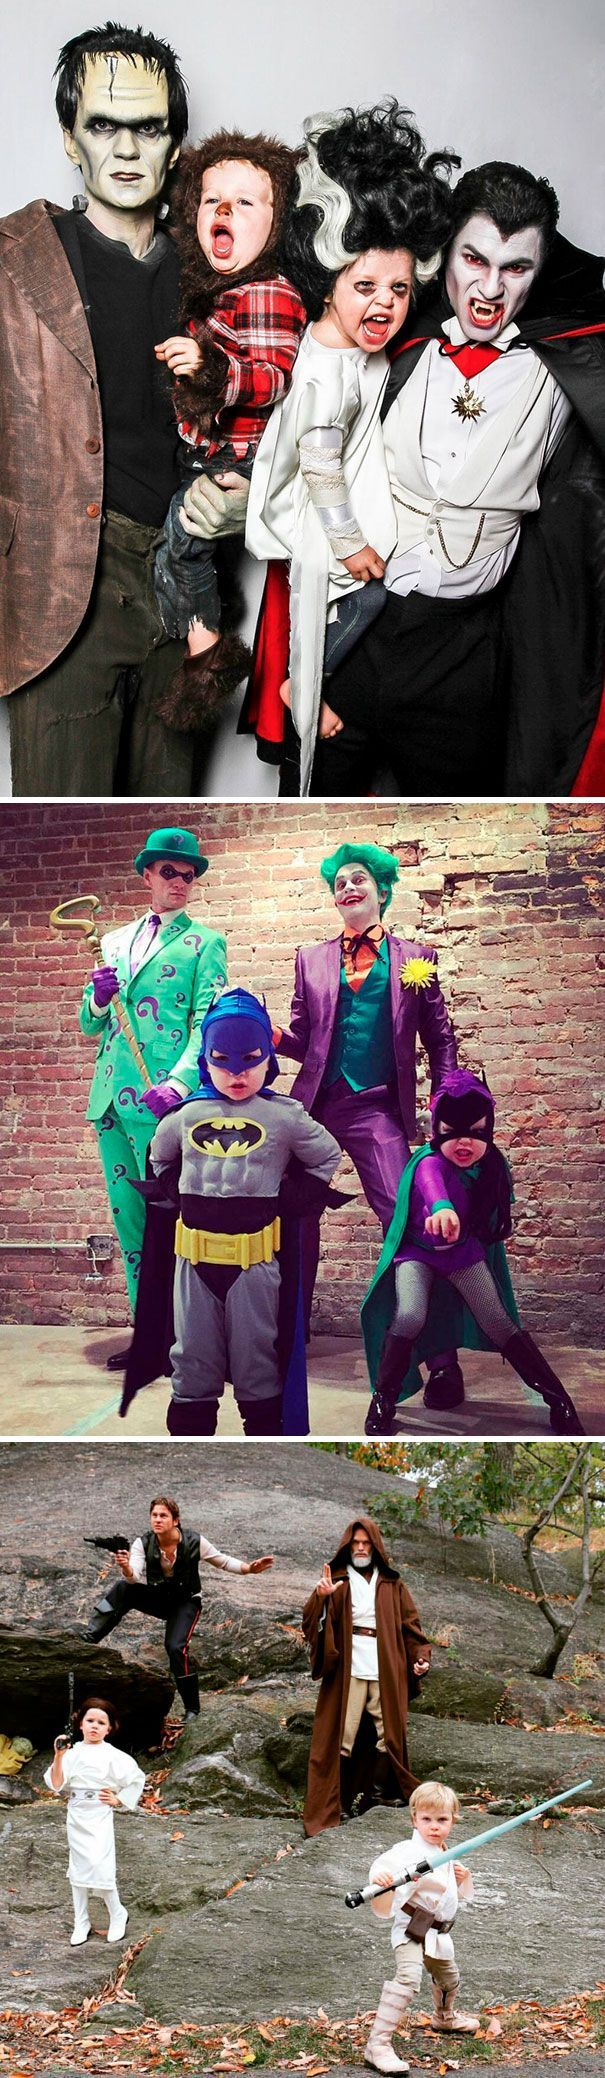 Neil Patrick Harris And His Family Have, Over The Last Few Years, Become The Undisputed Champions Of Halloween Costumes #funnyhalloweencostumes